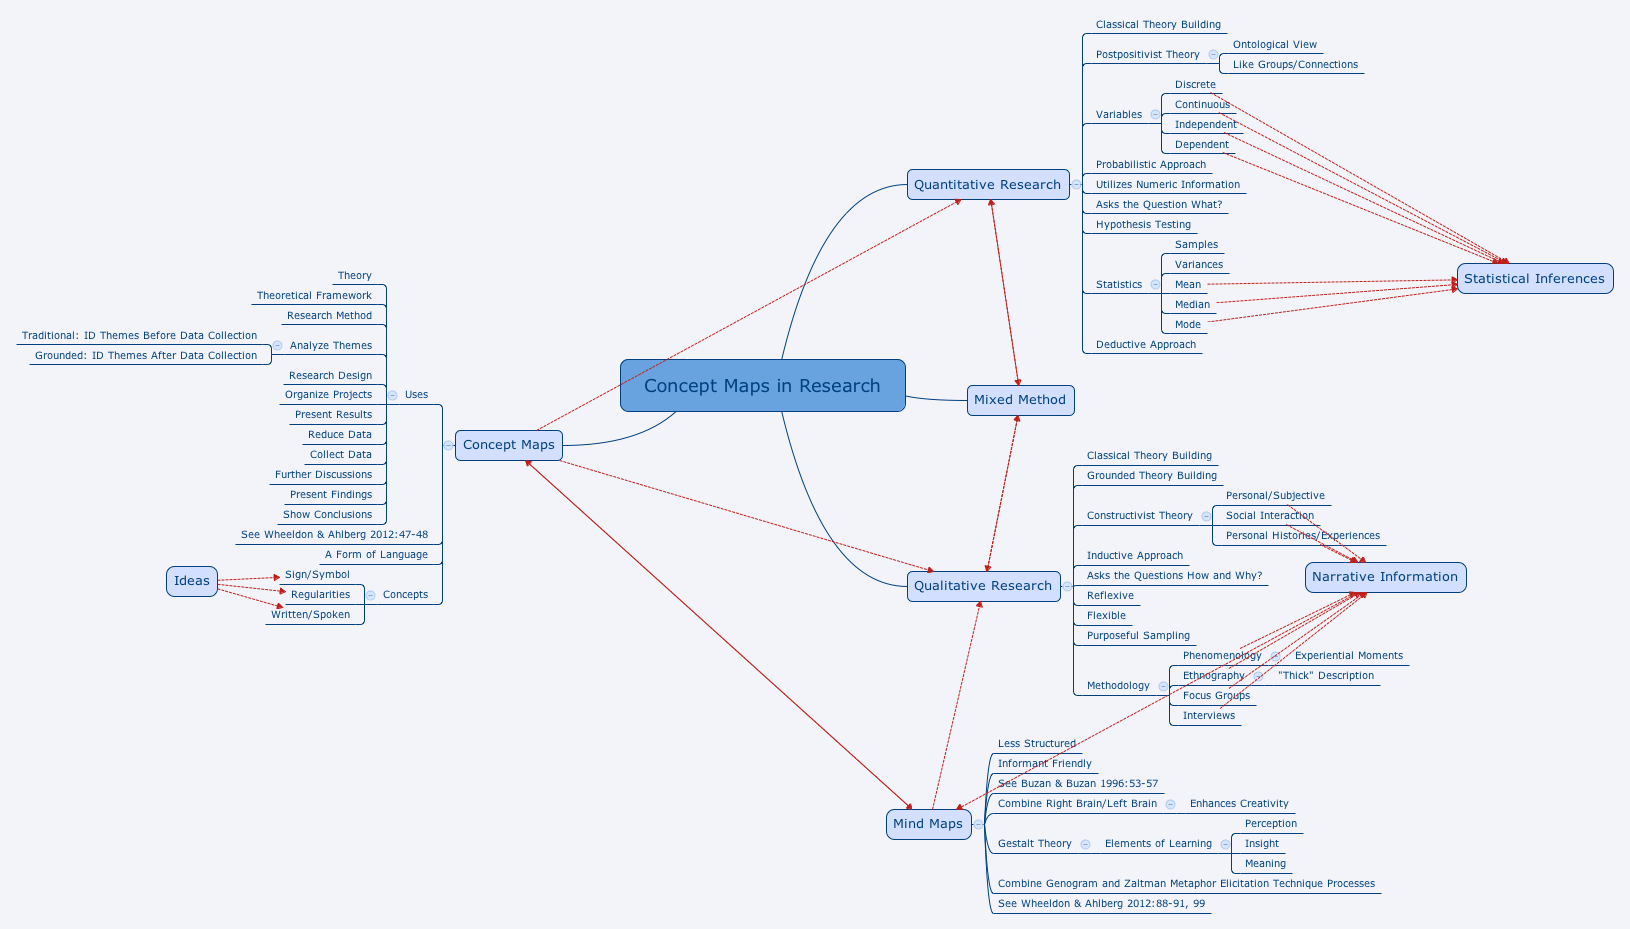 concept maps in research xmind online library - Online Concept Maps